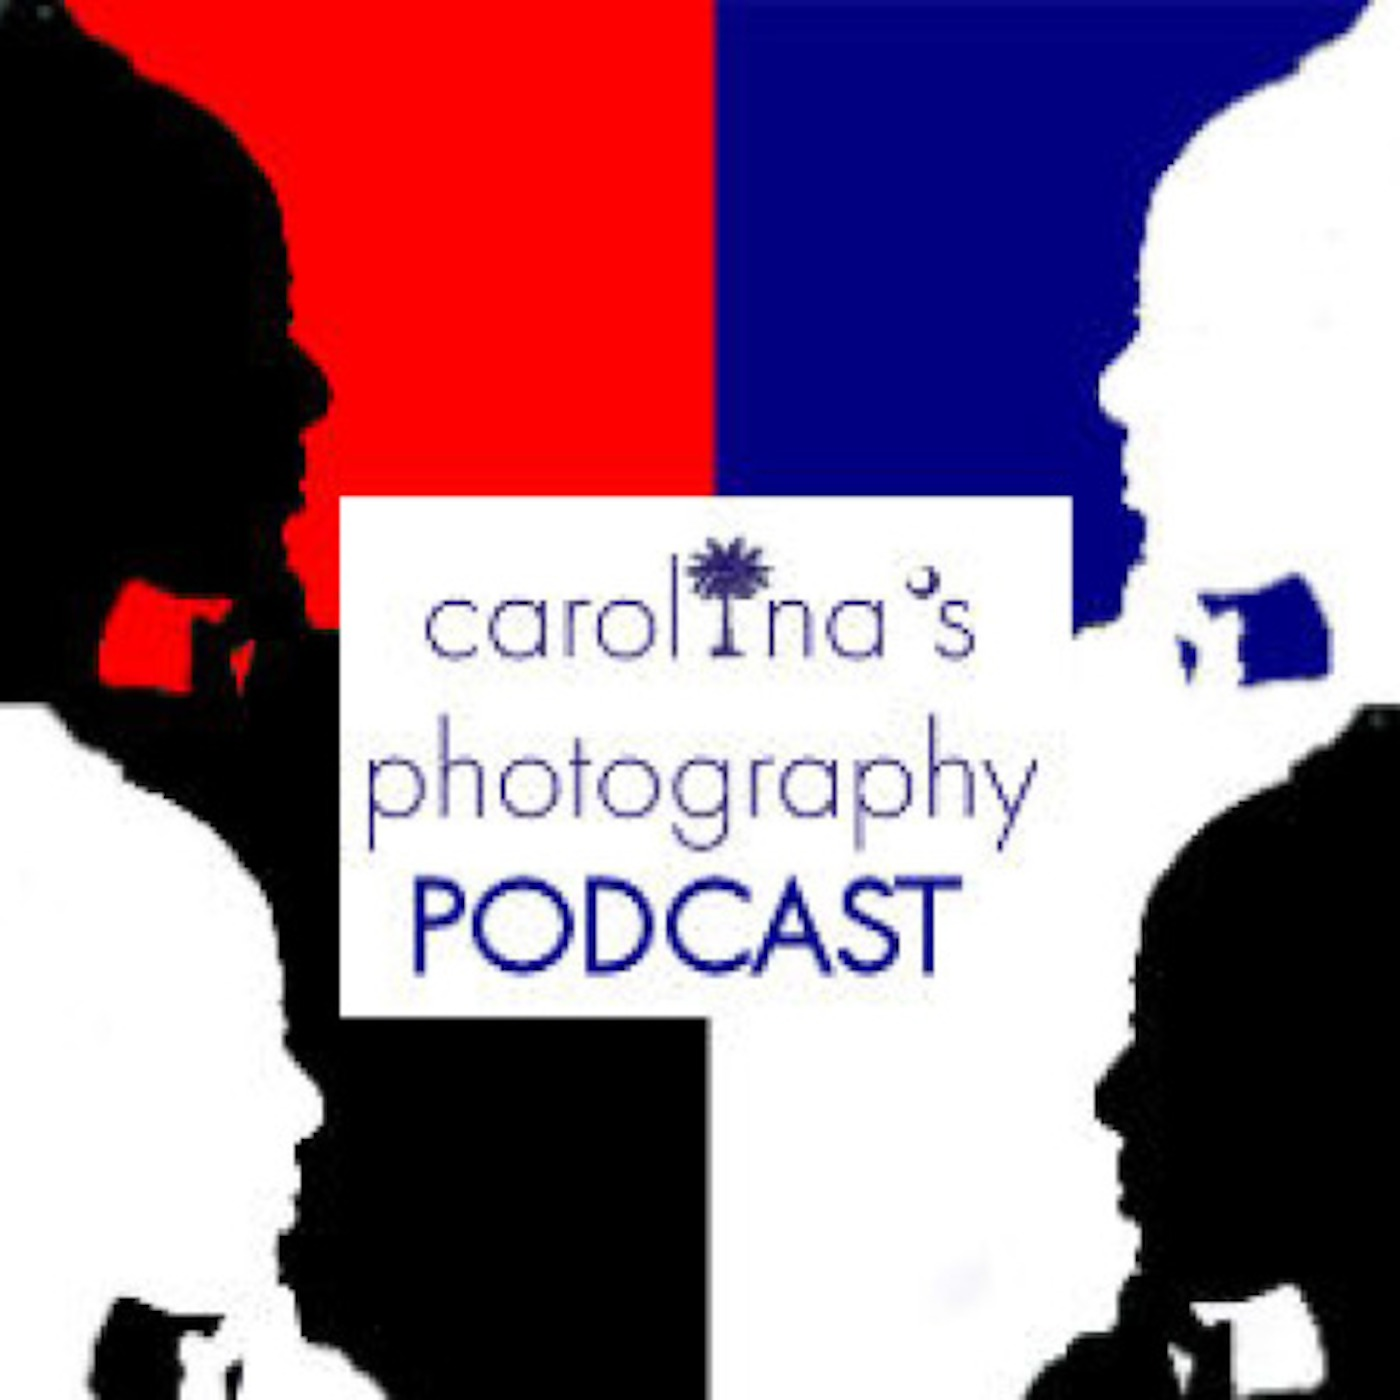 Carolinas Photography's Podcast